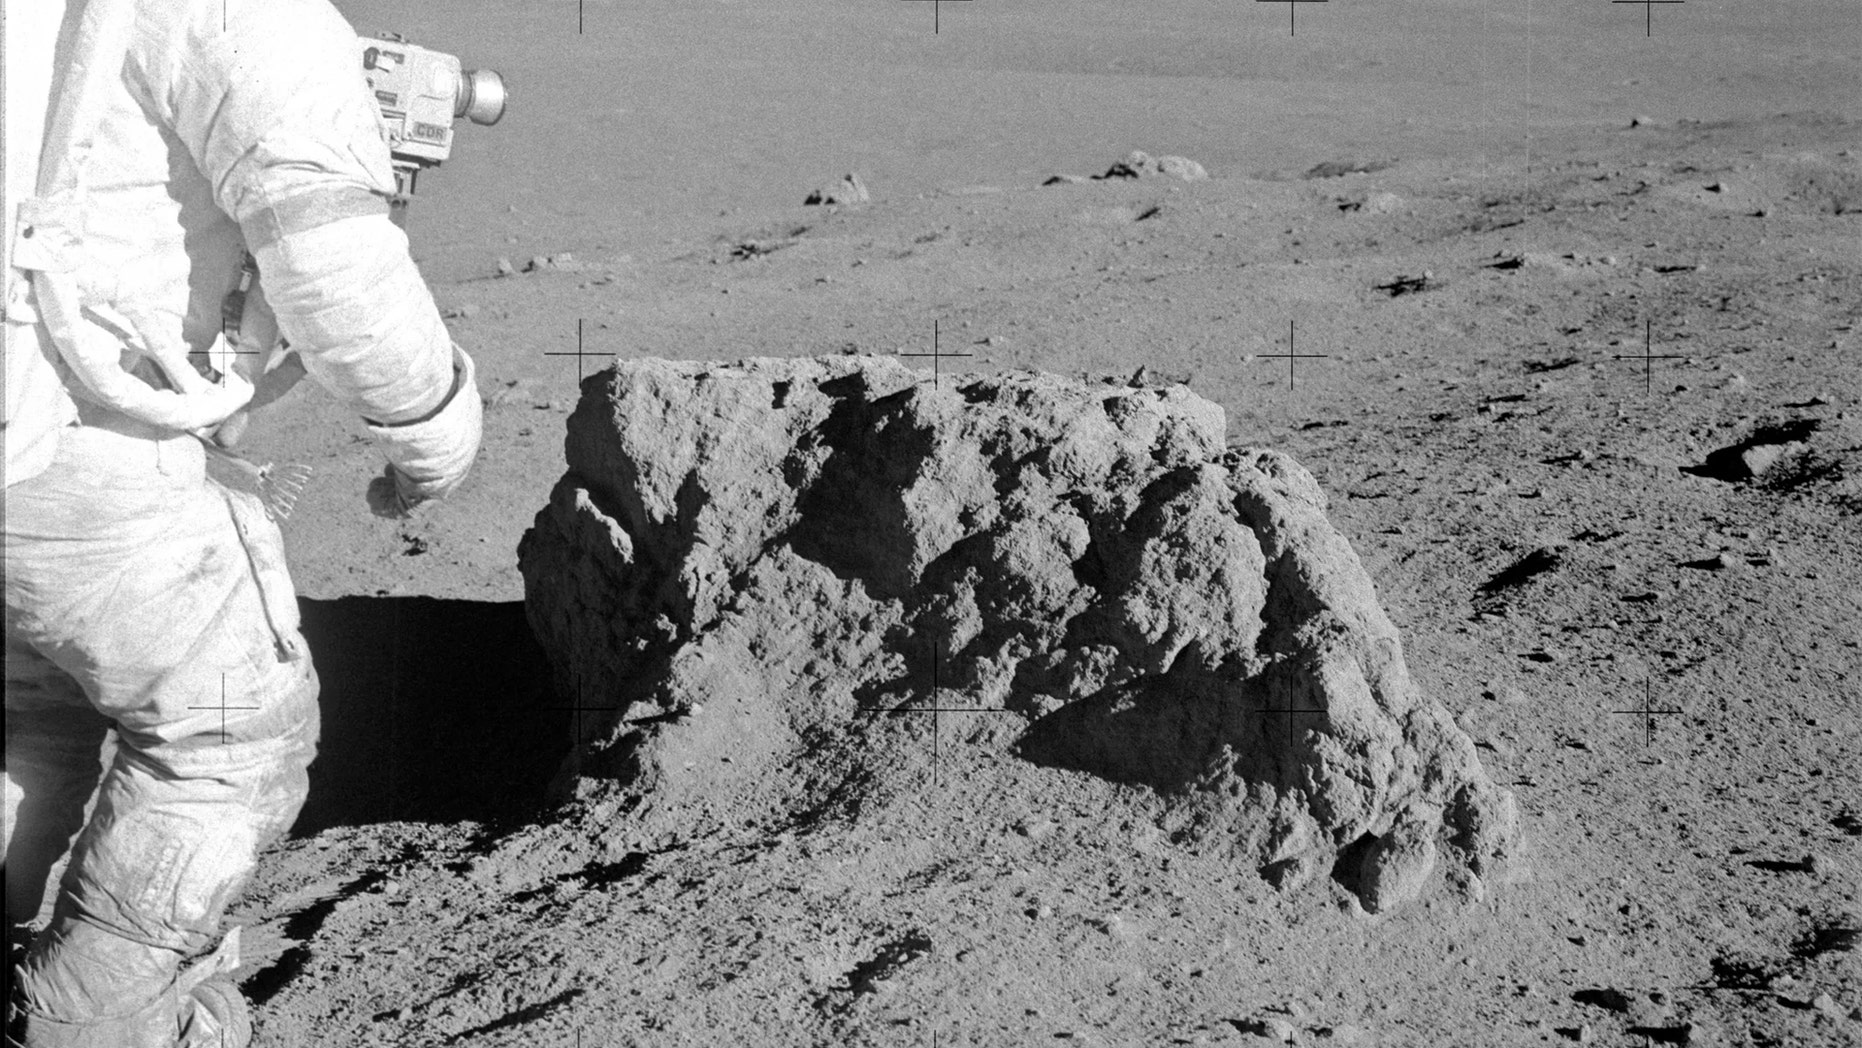 Moon dust clings to clothing and poses serious health risks to astronauts, a new study finds. Credit: NASA